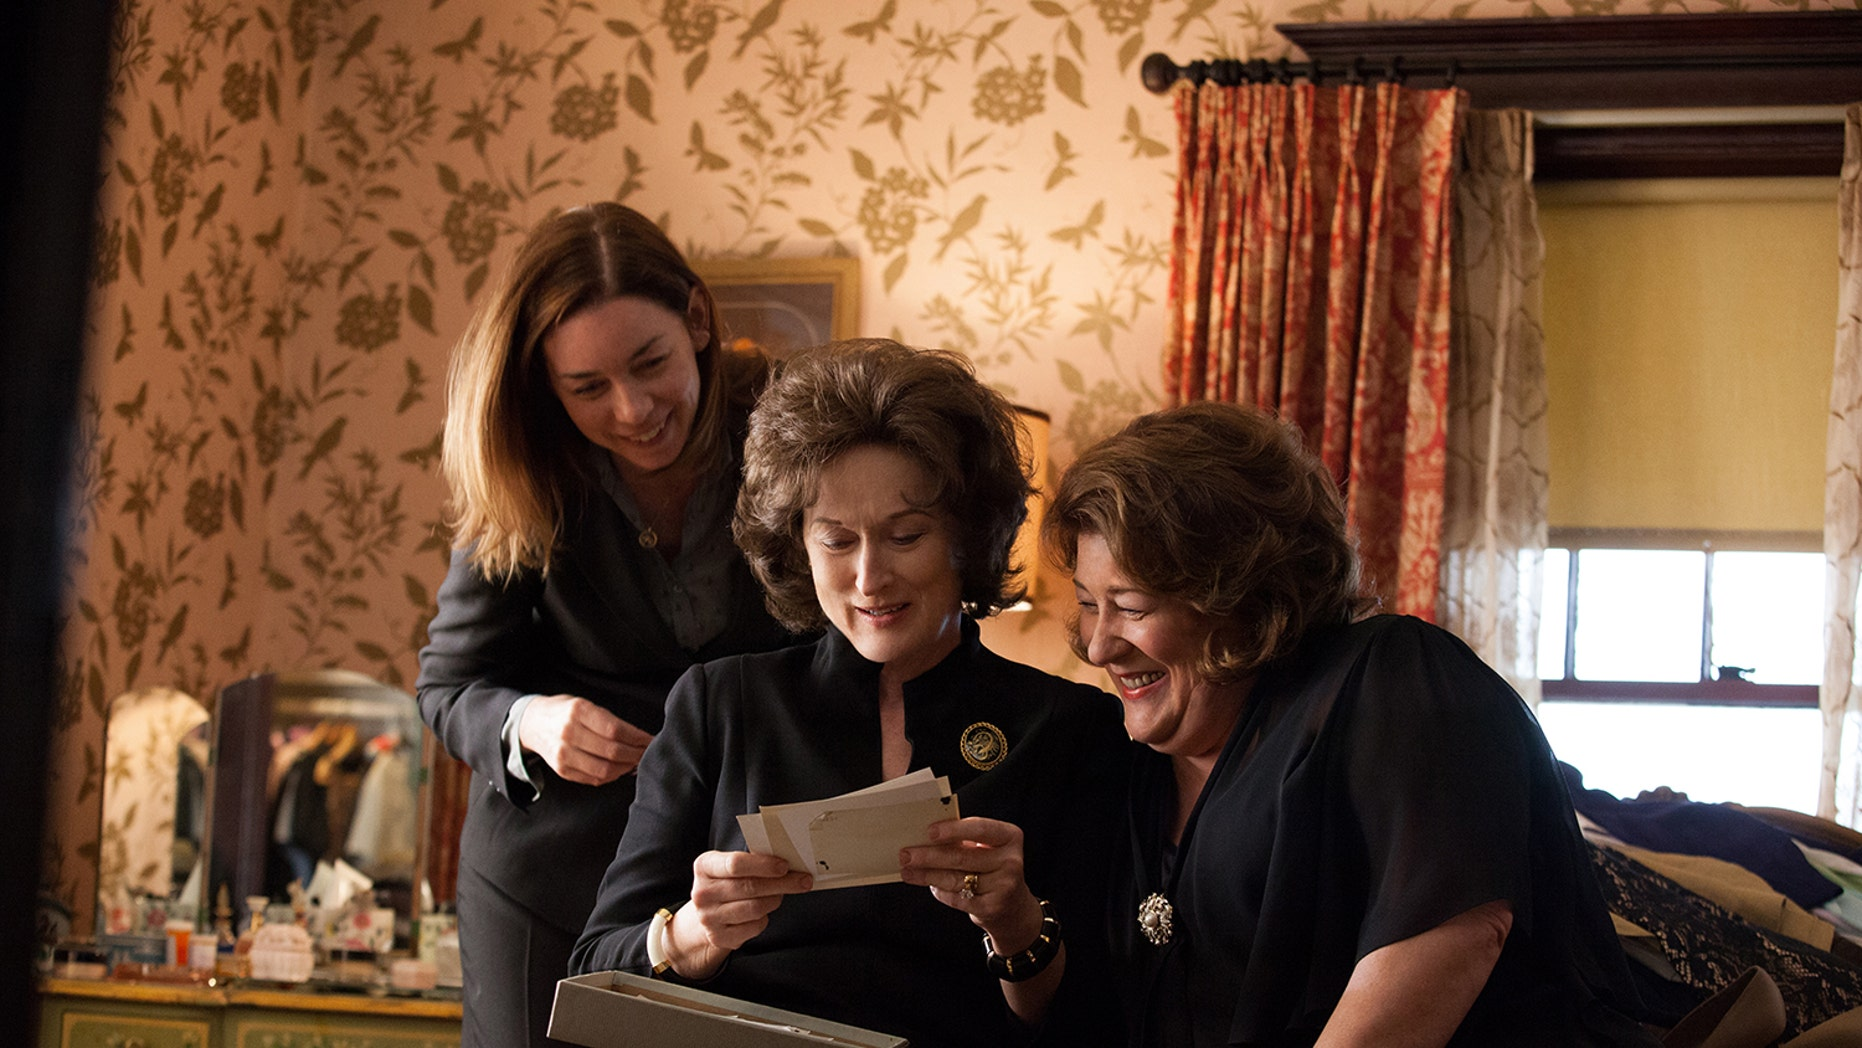 """This publicity image released by The Weinstein Company shows, from left, Julianne Nicholson, Meryl Streep and Margo Martindale in a scene from """"August: Osage County."""""""